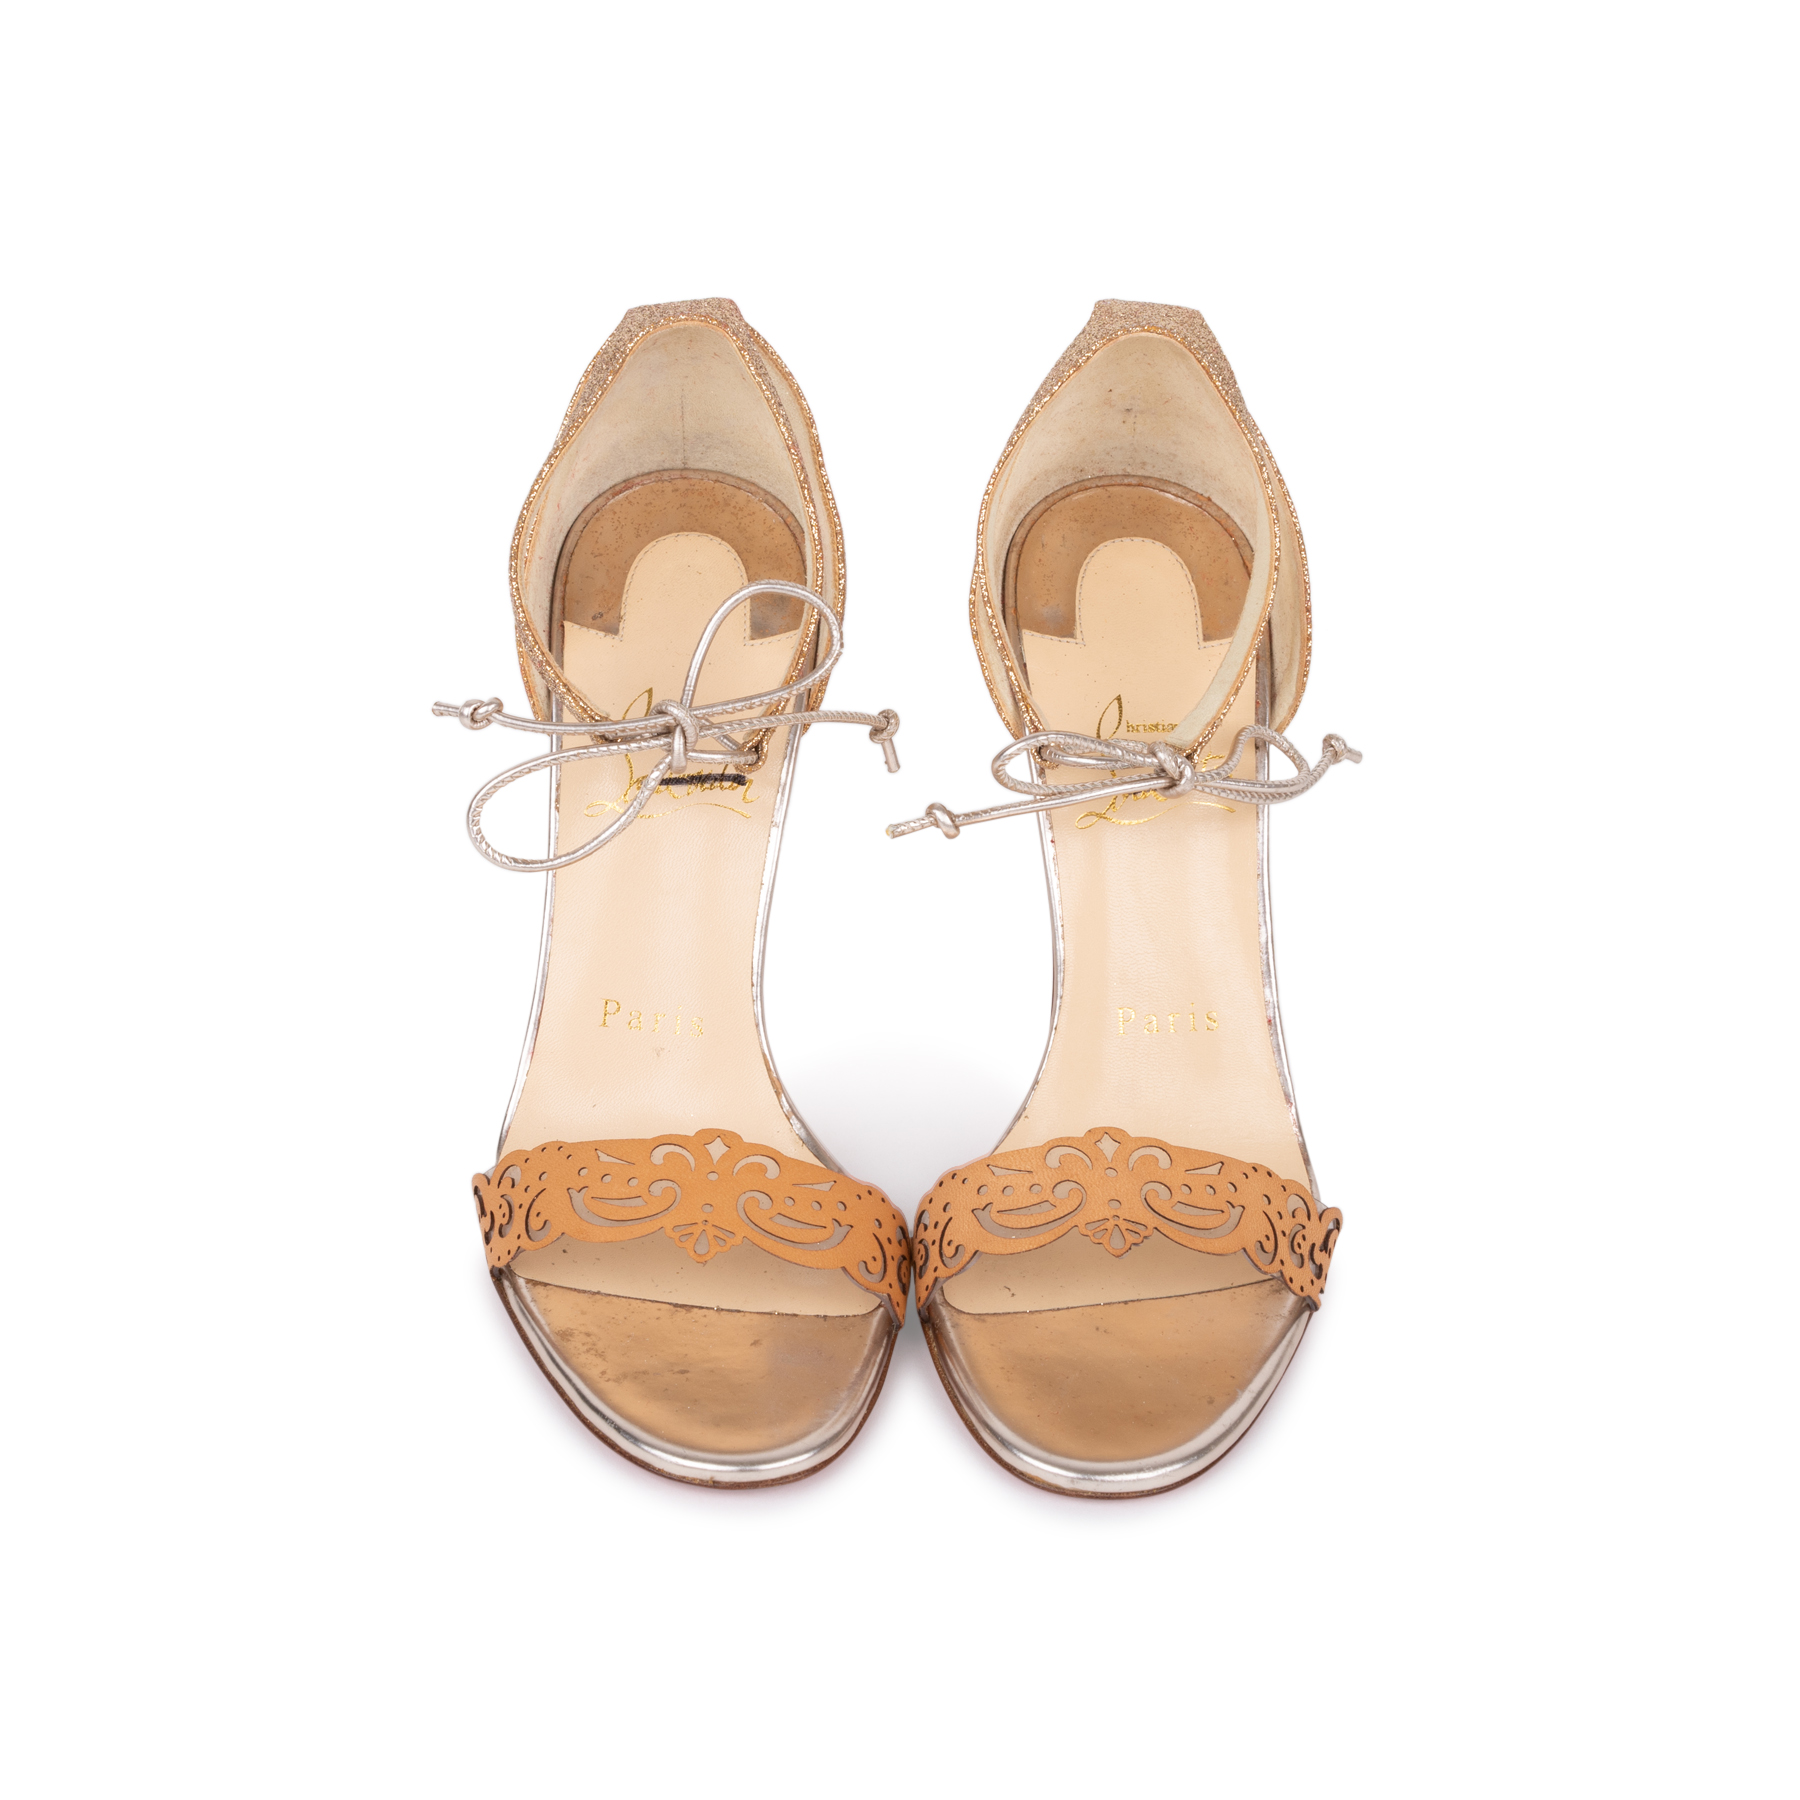 fa7b8a544226 Authentic Second Hand Christian Louboutin Valnina Laser Cut Sandals  (PSS-583-00003)